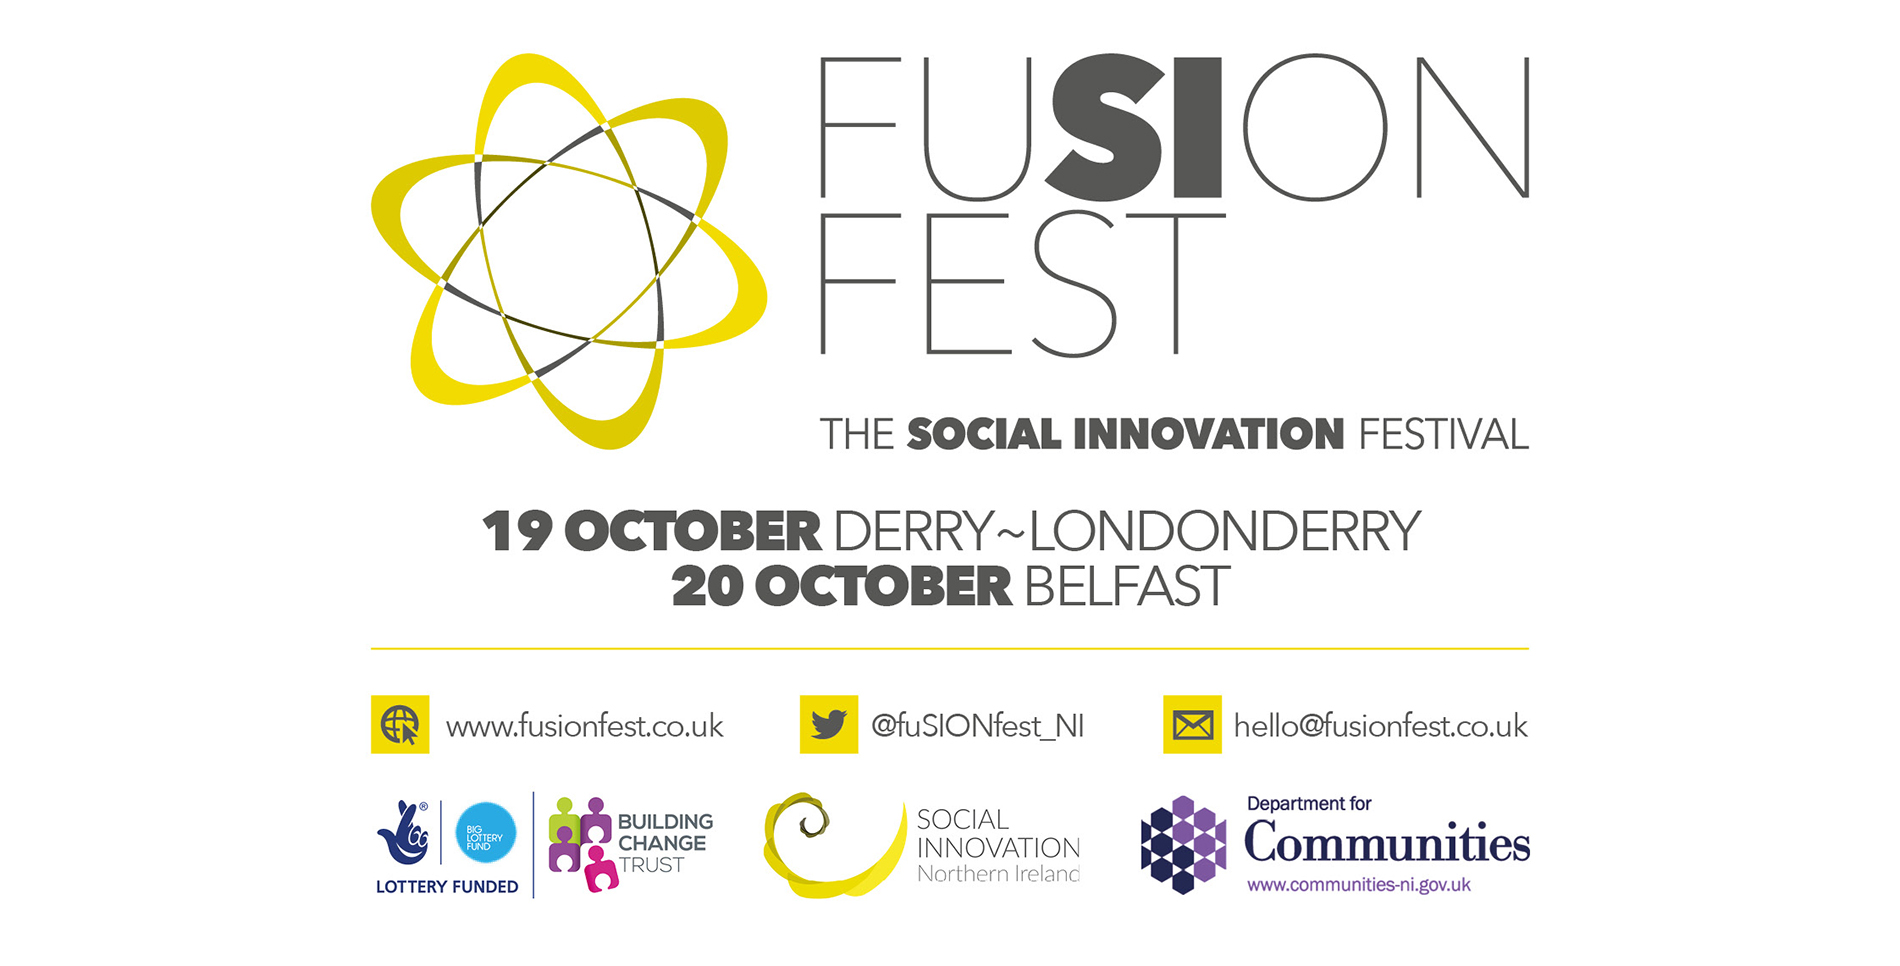 Youth Unemployment on the Agenda at FuSIon Fest